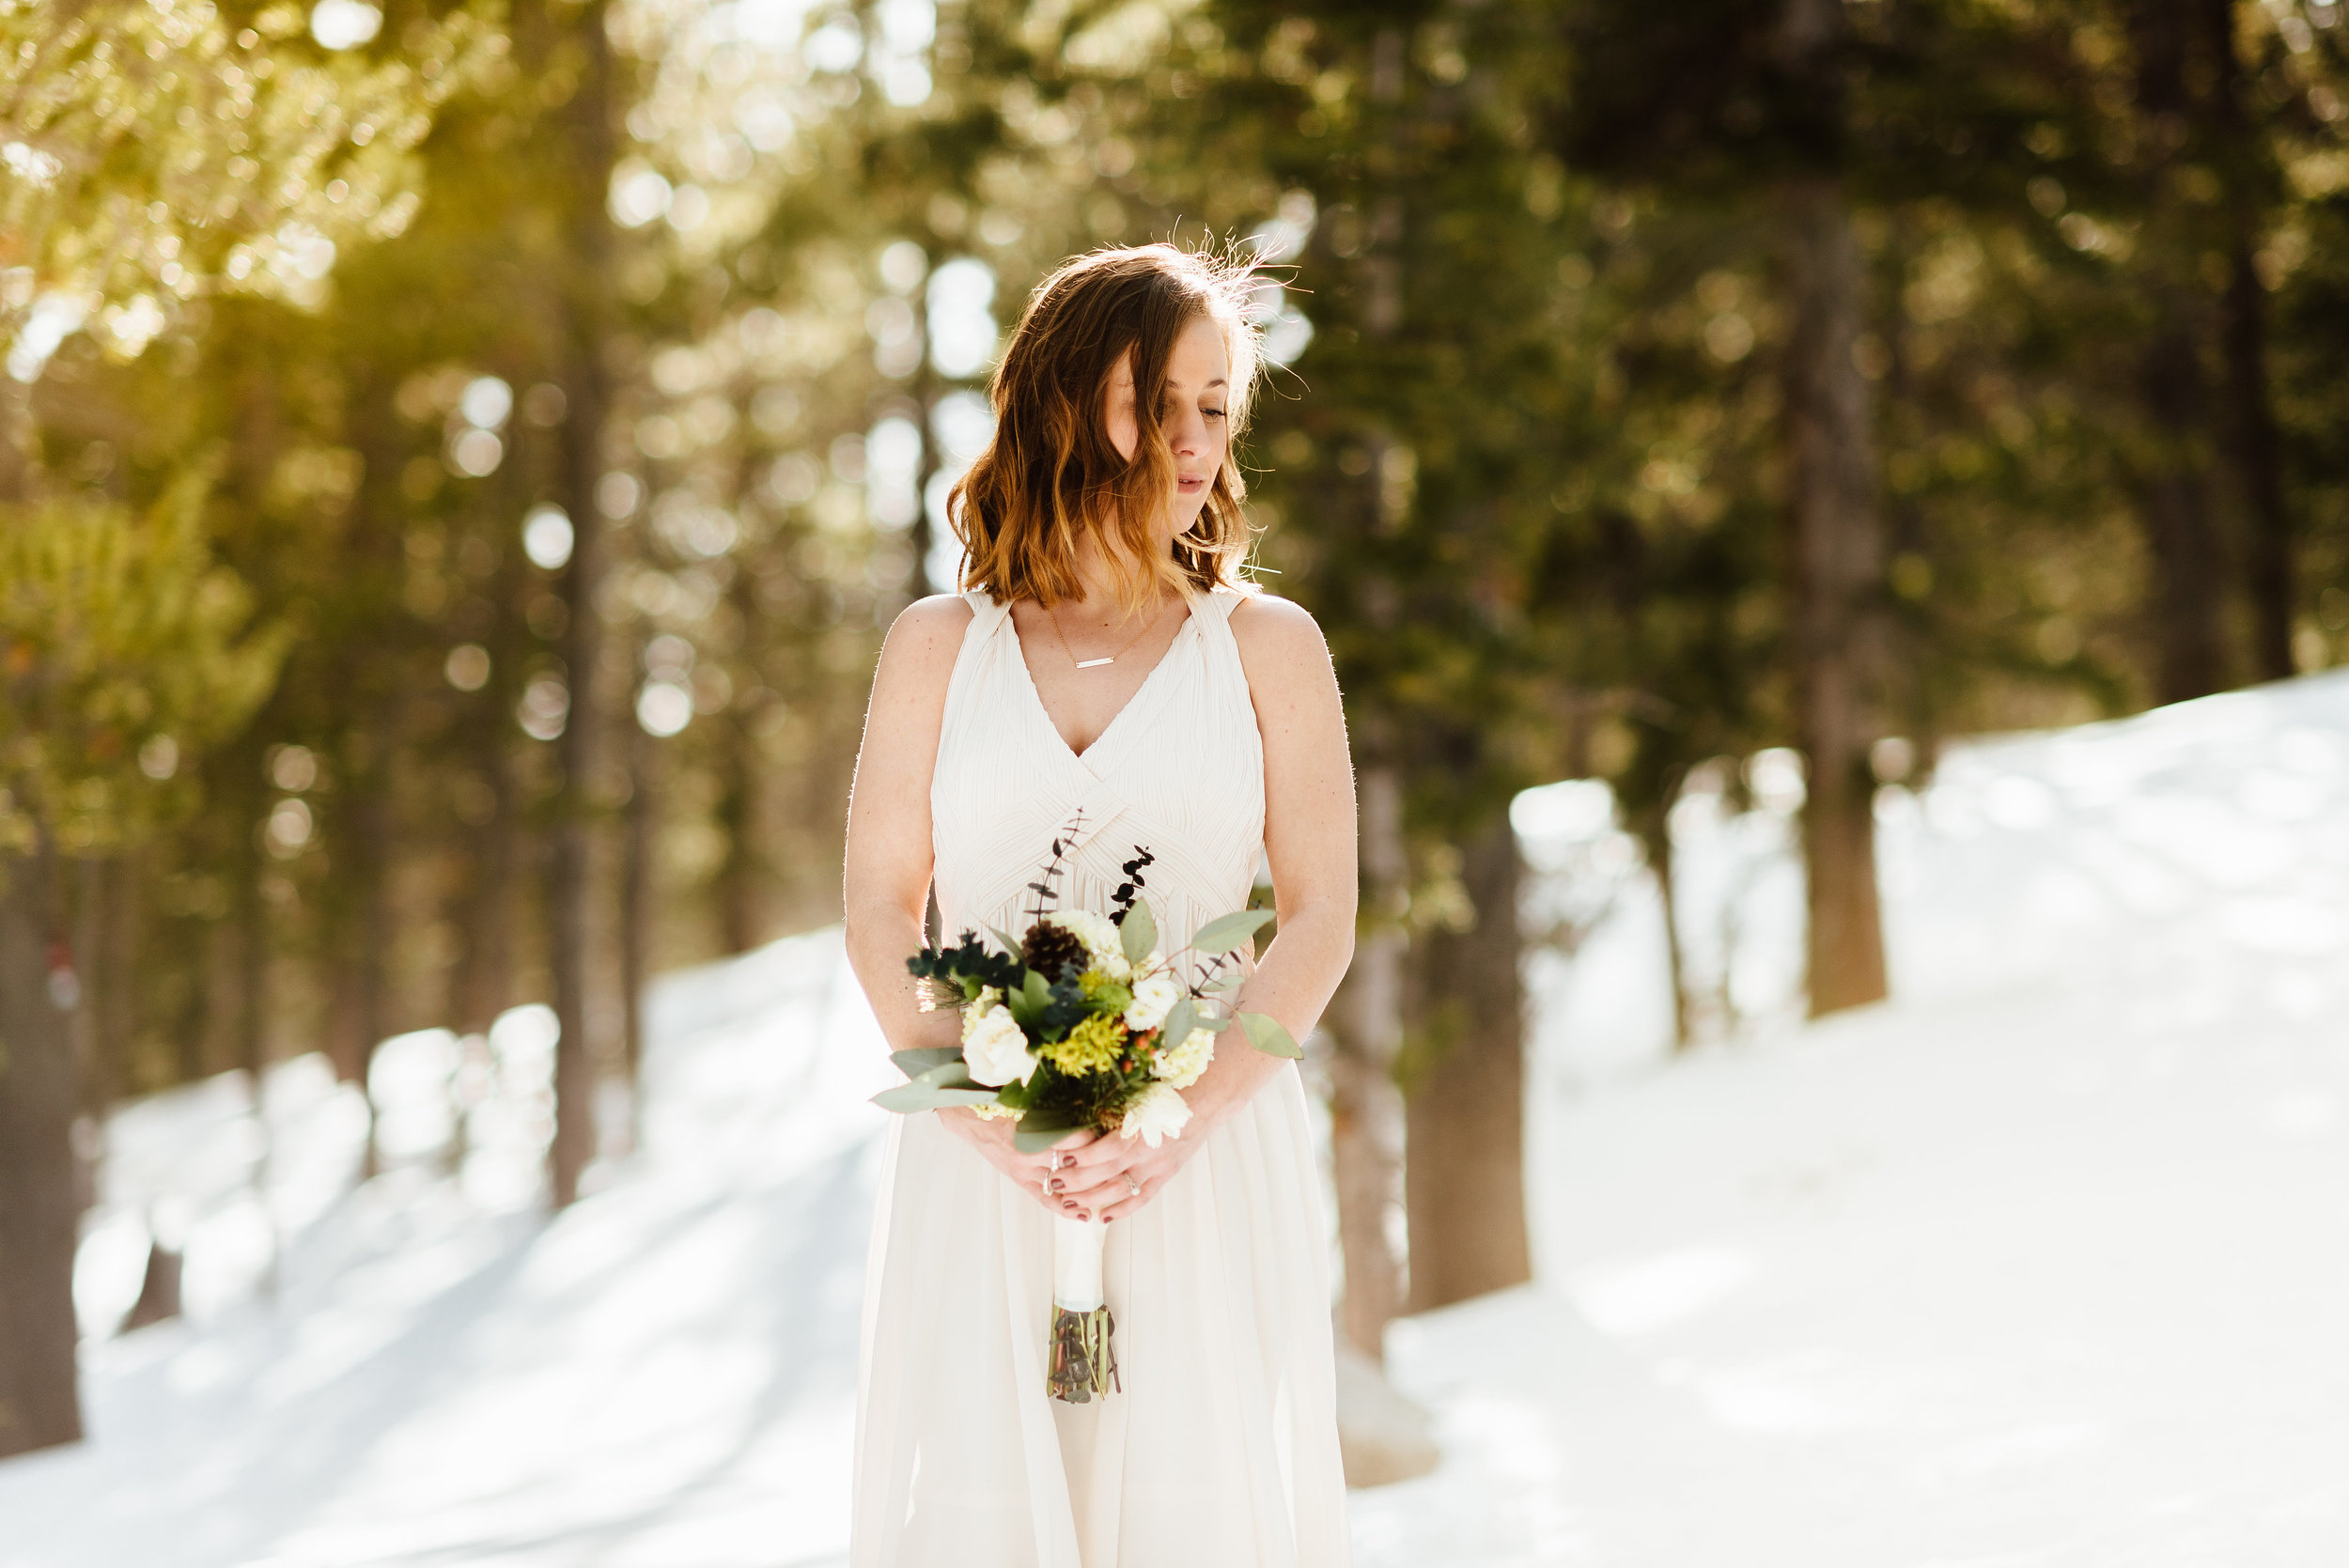 This rustic, mountain bouquet is so gorgeous. Love the hints of sage green and yellow mixed in with the wild, white roses!| Mountain elopement photos by adventure wedding photographer, Maddie Mae.